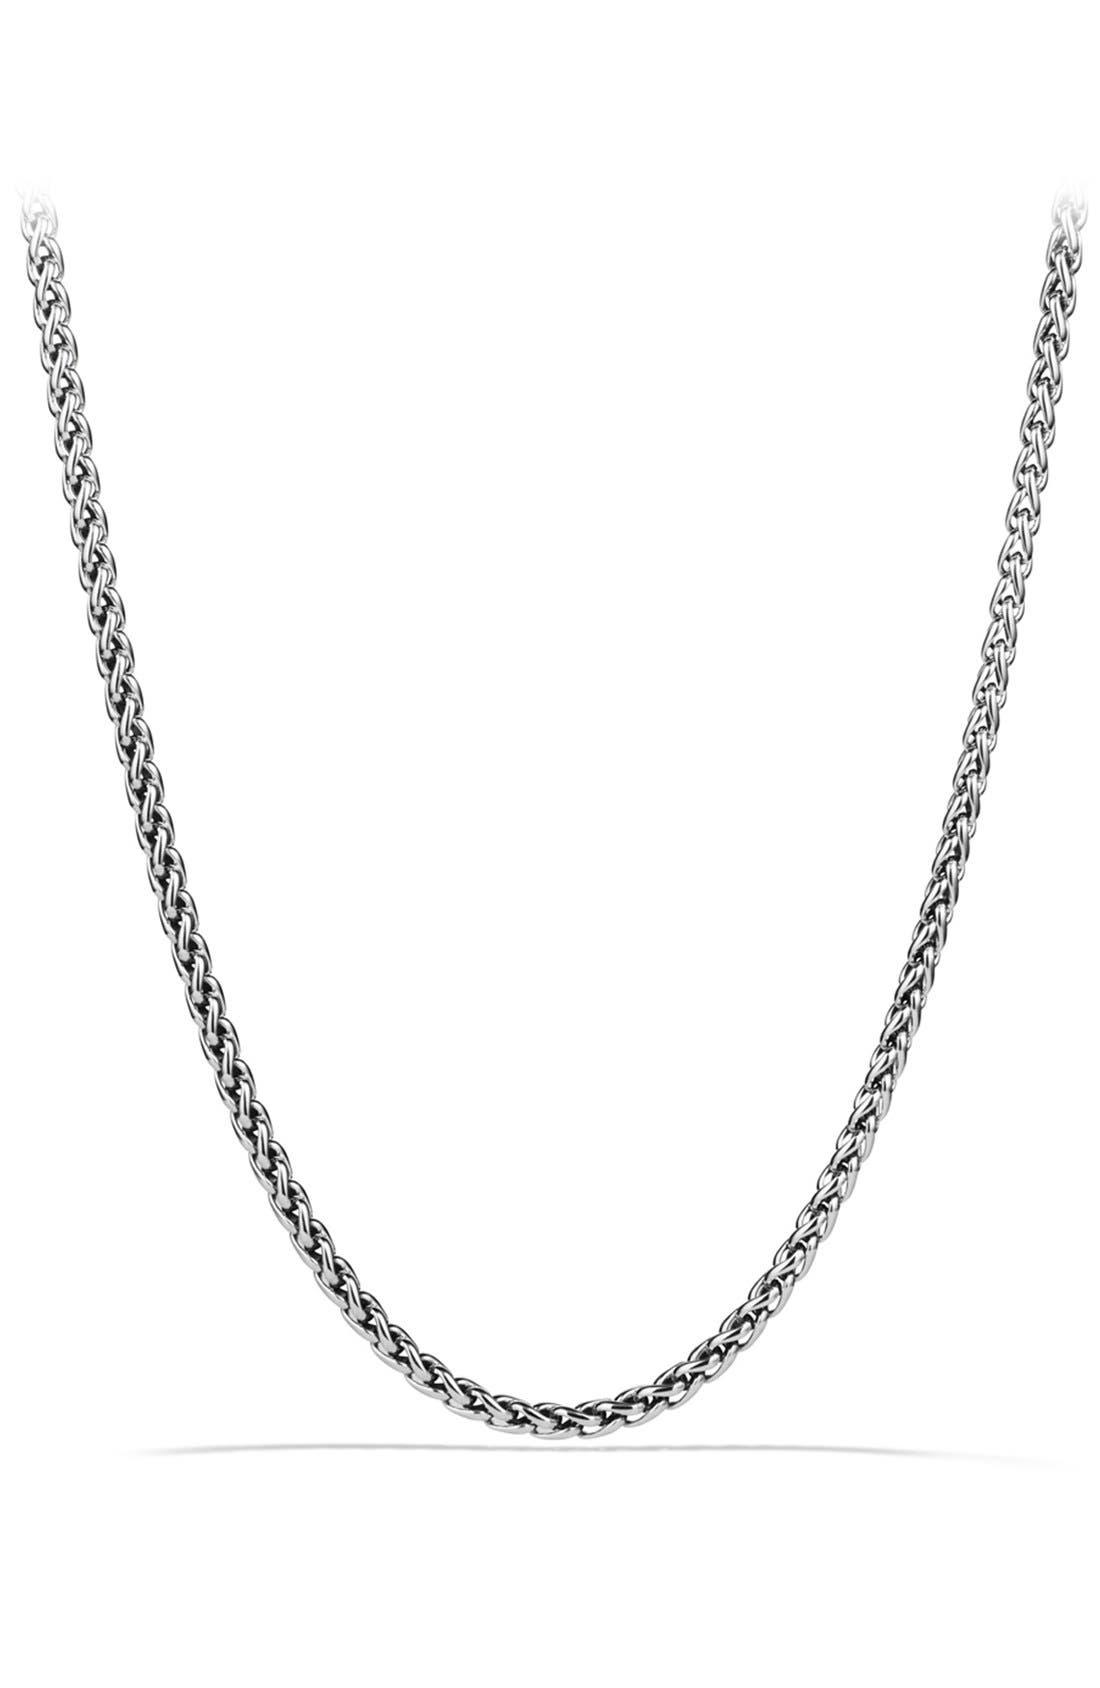 Alternate Image 1 Selected - David Yurman 'Chain' Wheat Link Necklace